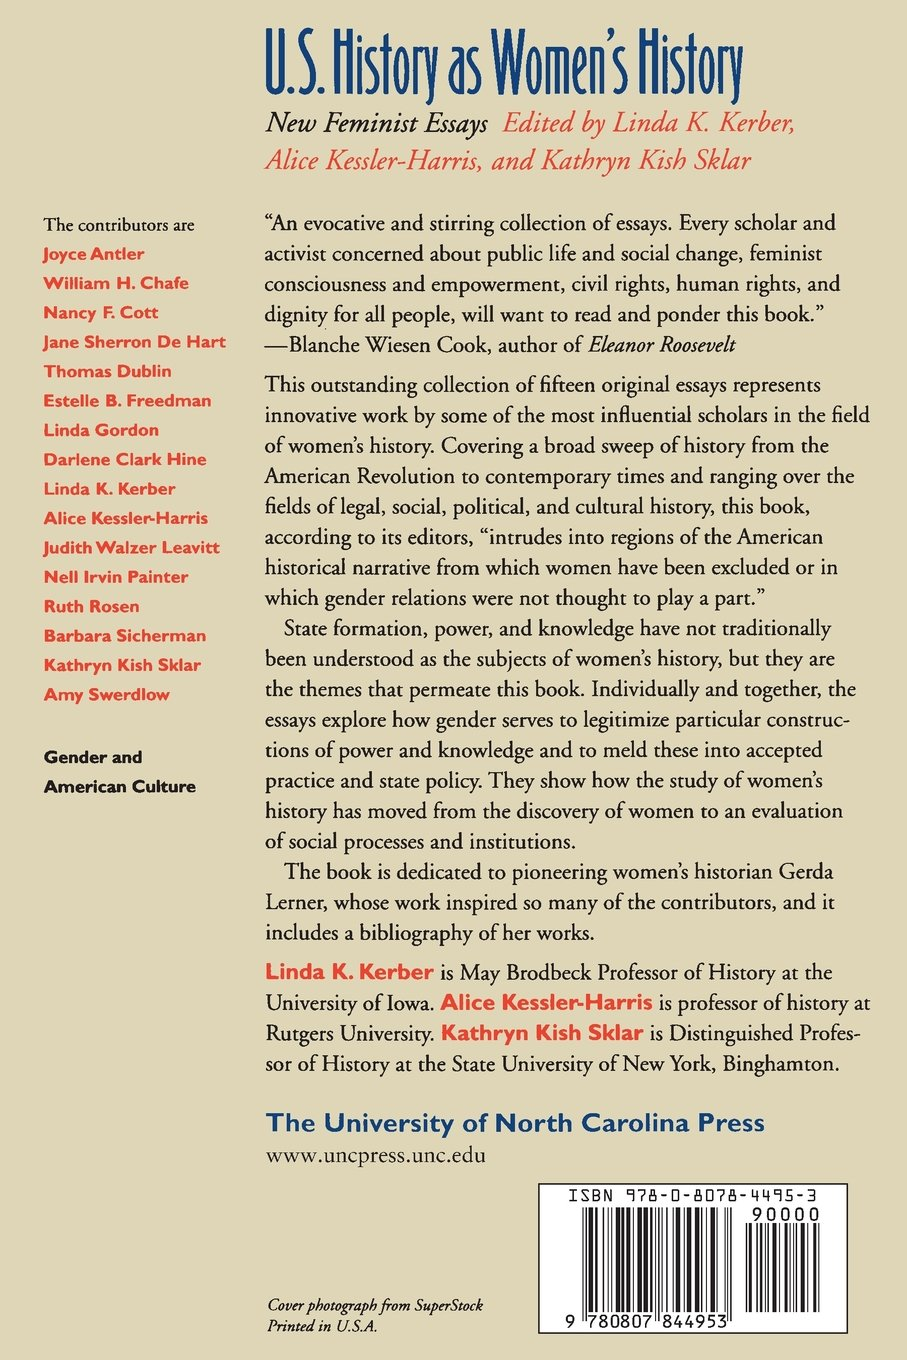 u s history as women s history new feminist essays gender and u s history as women s history new feminist essays gender and american culture linda k kerber alice kessler harris kathryn kish sklar